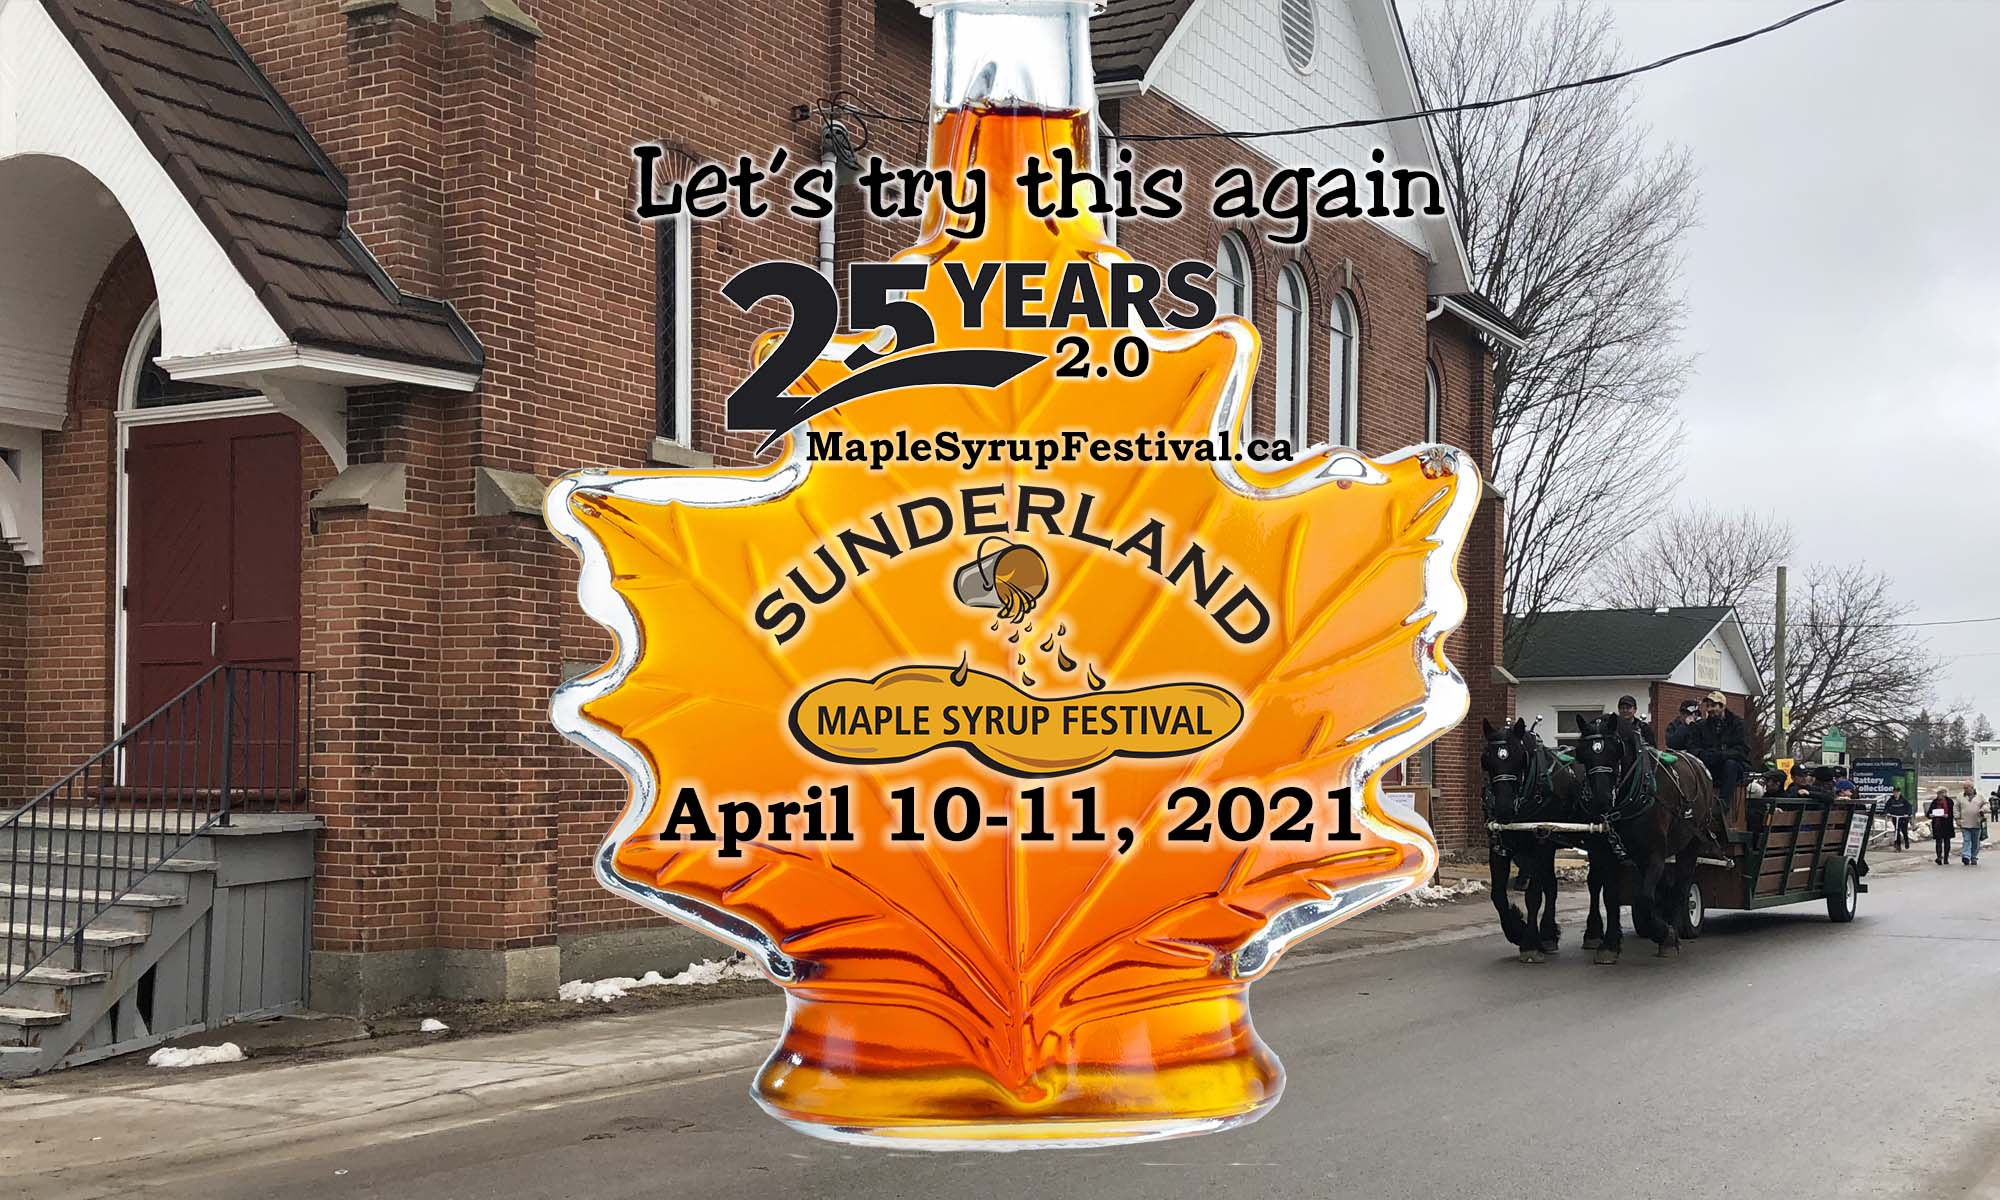 Sunderland Maple Syrup Festival - 25 Years